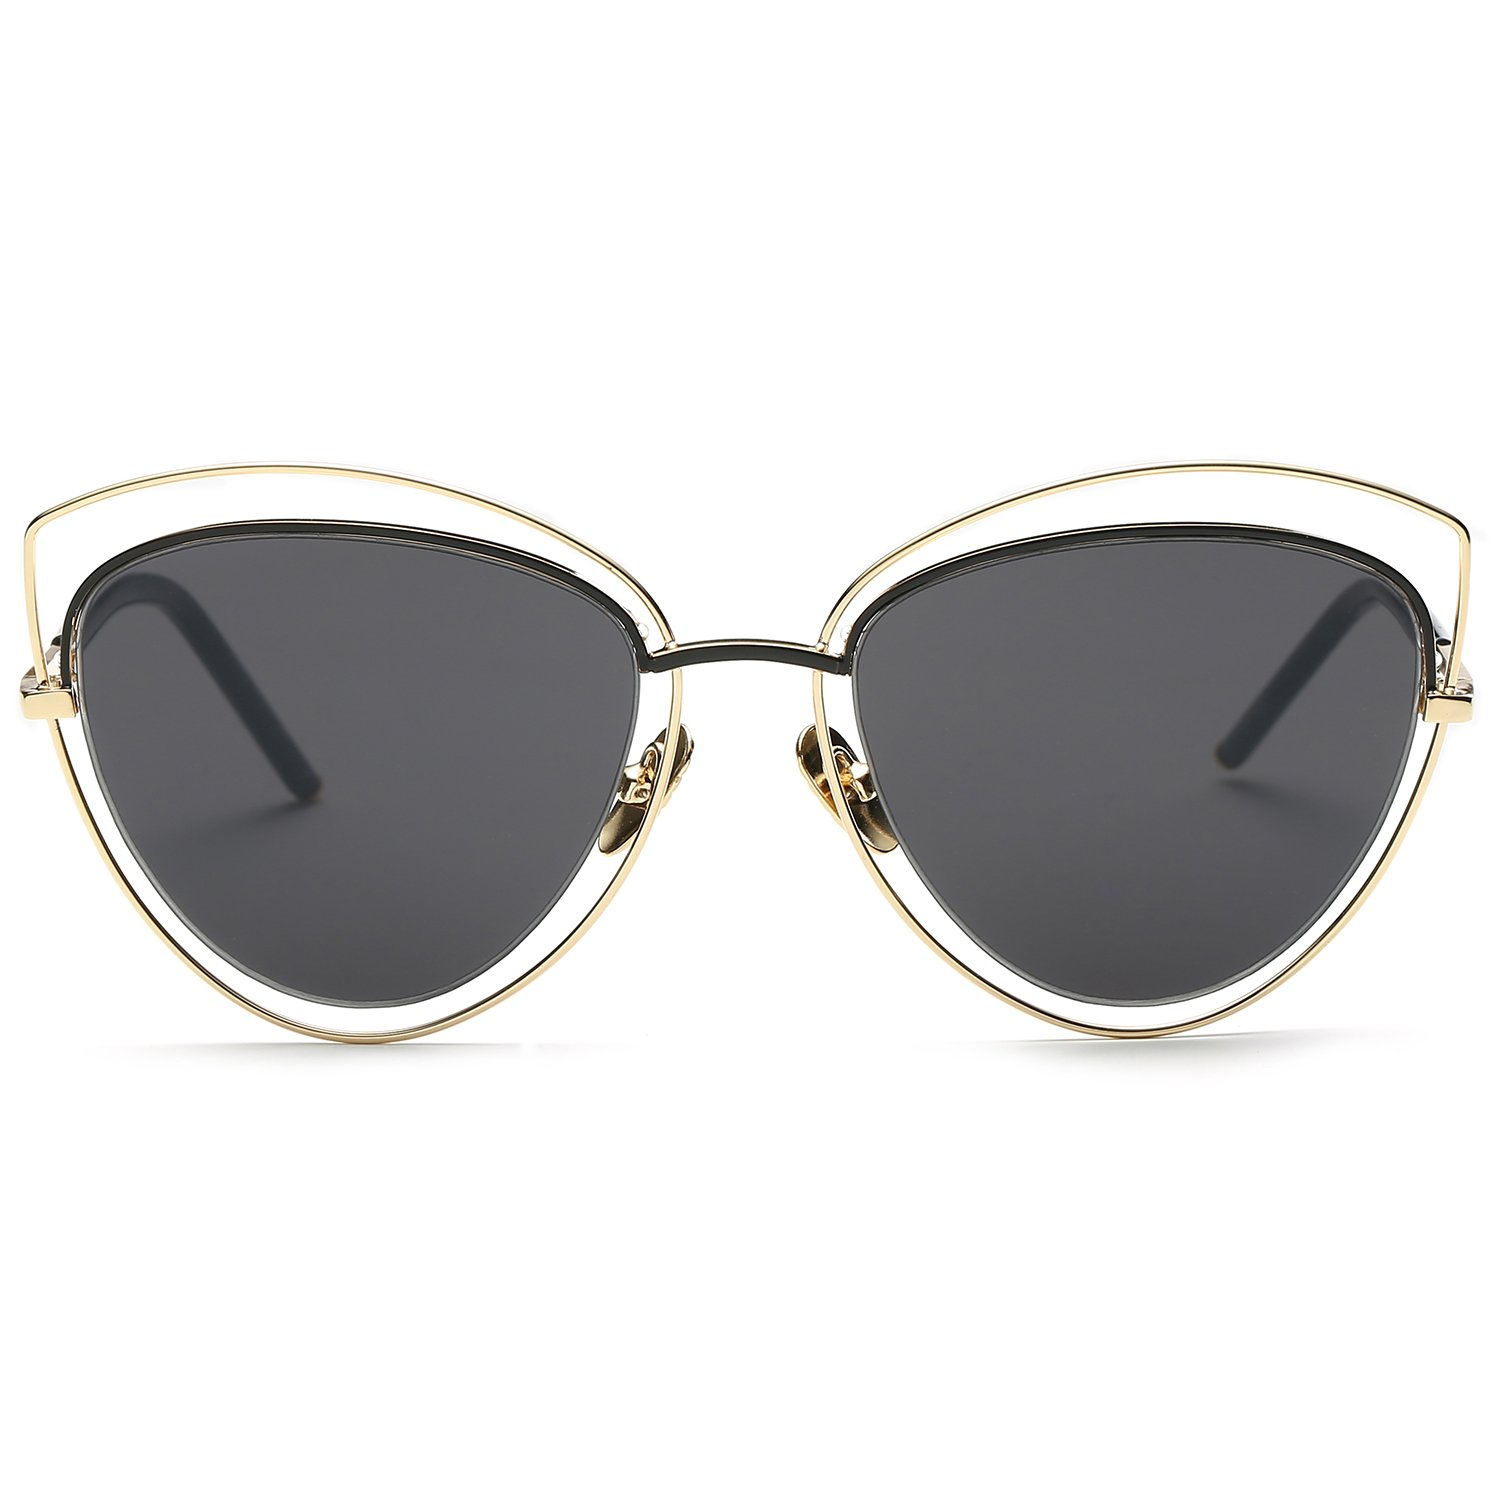 c34bef8ce3e SojoS Women s Double Wire Double Rimmed UV400 Cat Eye Sunglasses SJ1047  with Gold Frame Grey Lens  Amazon.in  Clothing   Accessories